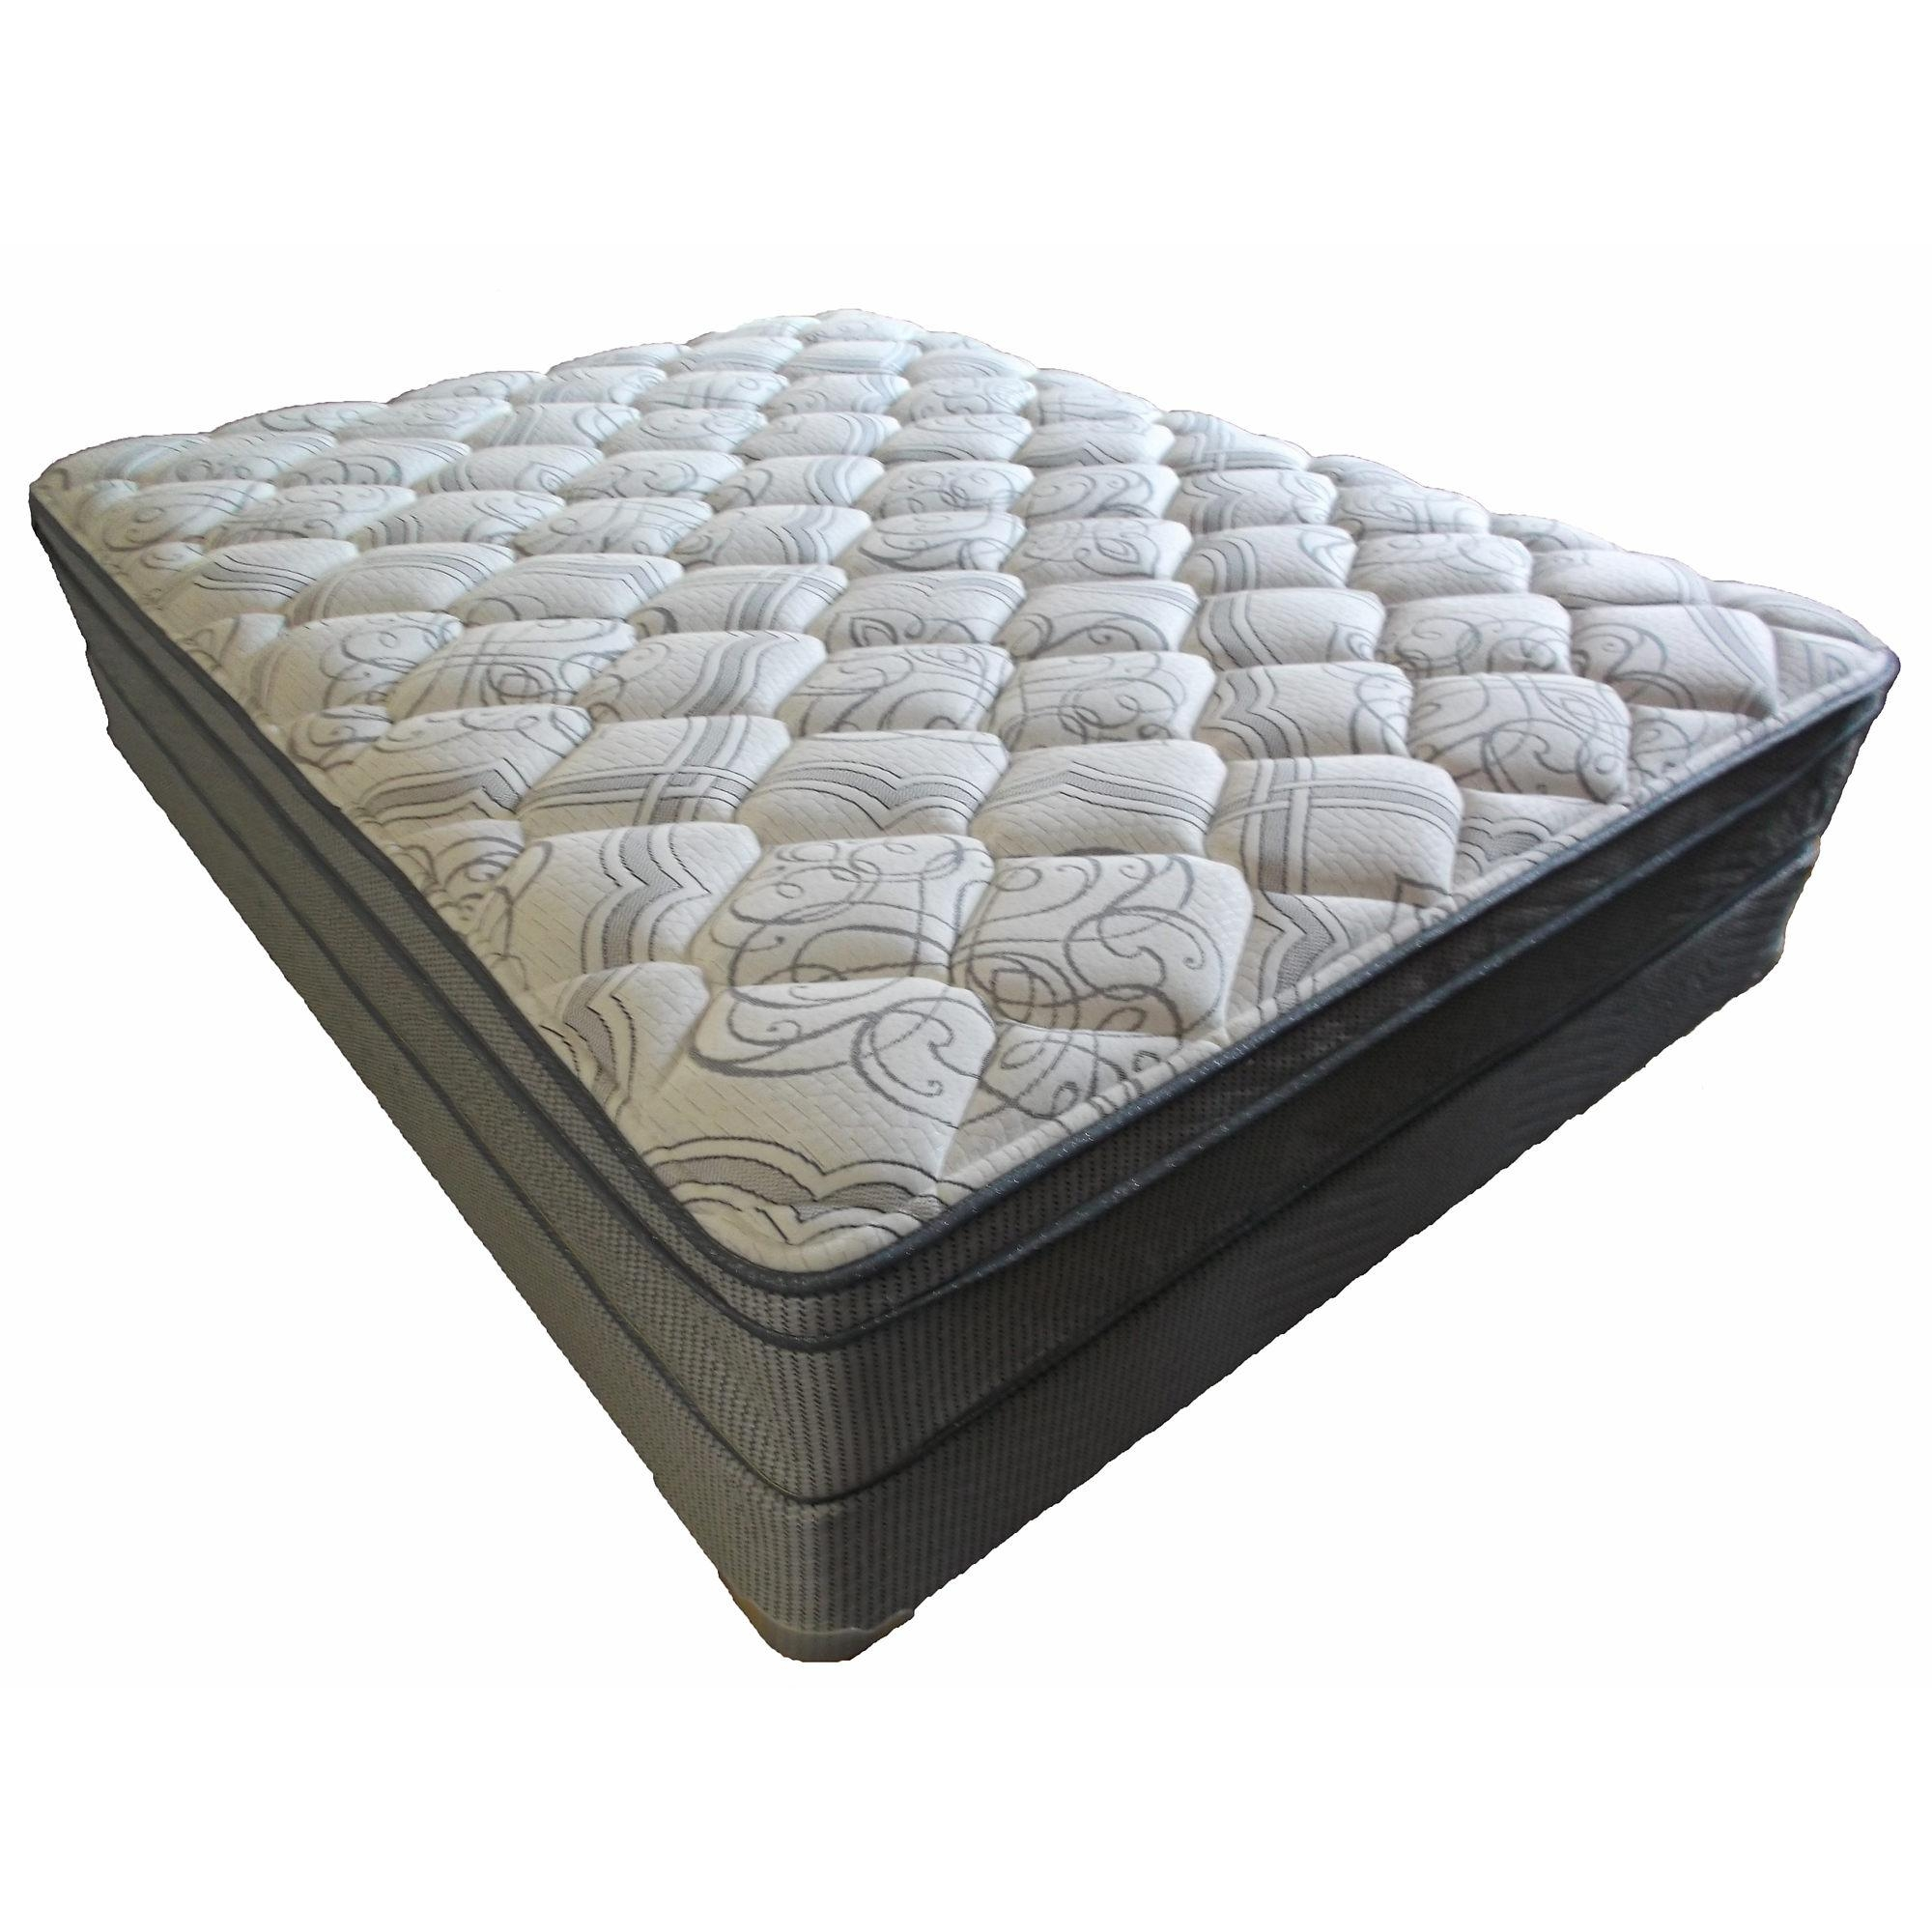 Cheap Queen Mattress Sets Under 200 | Vertigino Mattress Intended For Queen Mattress Sets (Image 4 of 20)